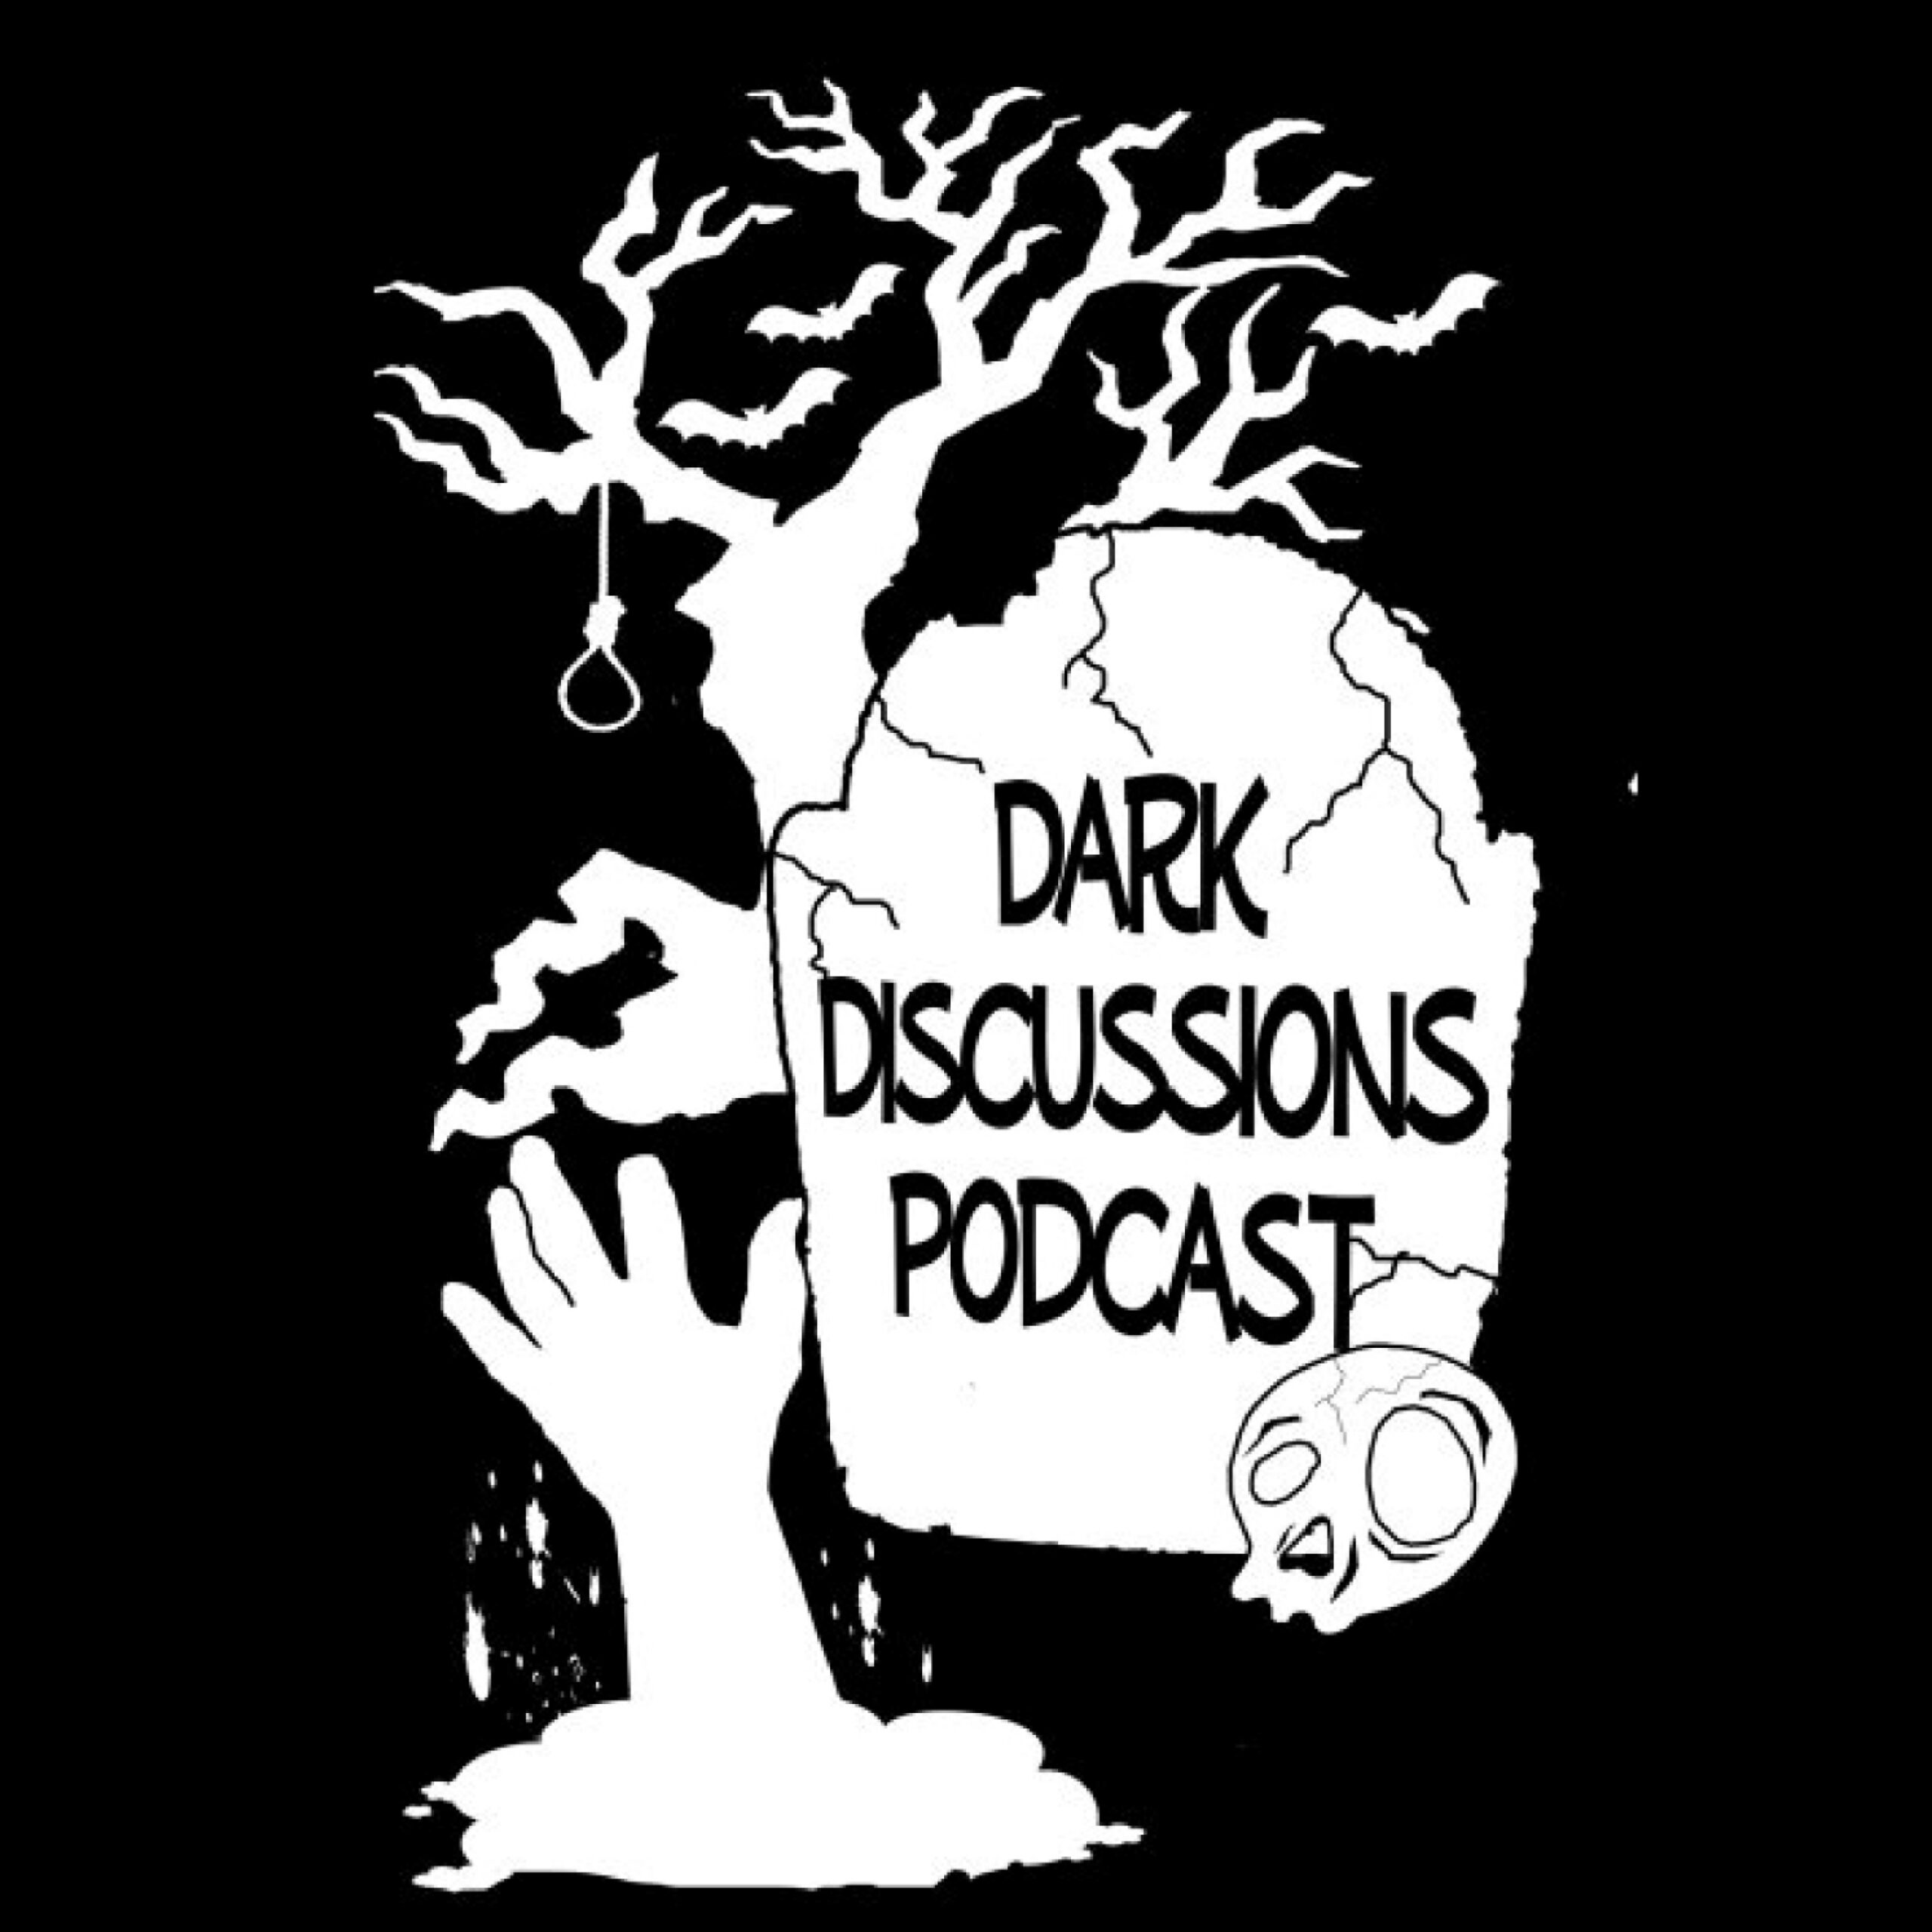 Artwork for podcast Dark Discussions Podcast